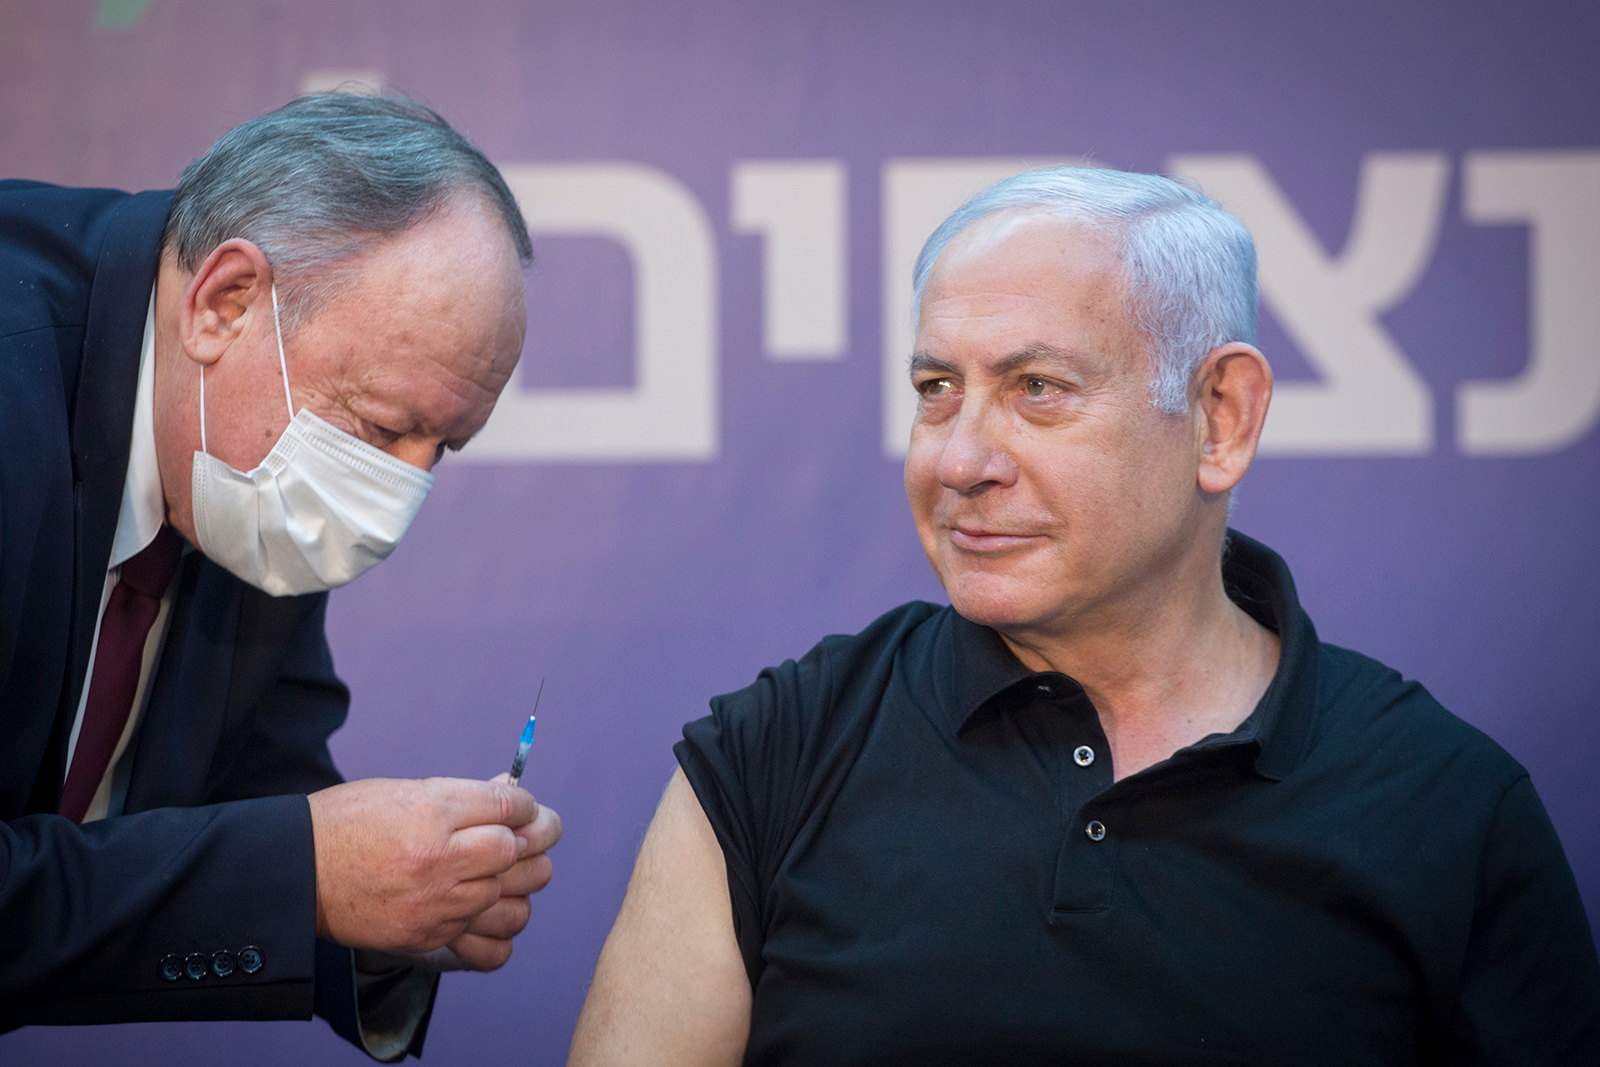 Israeli Prime Minister Minister Benjamin Netanyahu is ready to receive the second Covid-19 vaccine at Sheba Medical Center in Ramat Gan, Israel, on January 9.